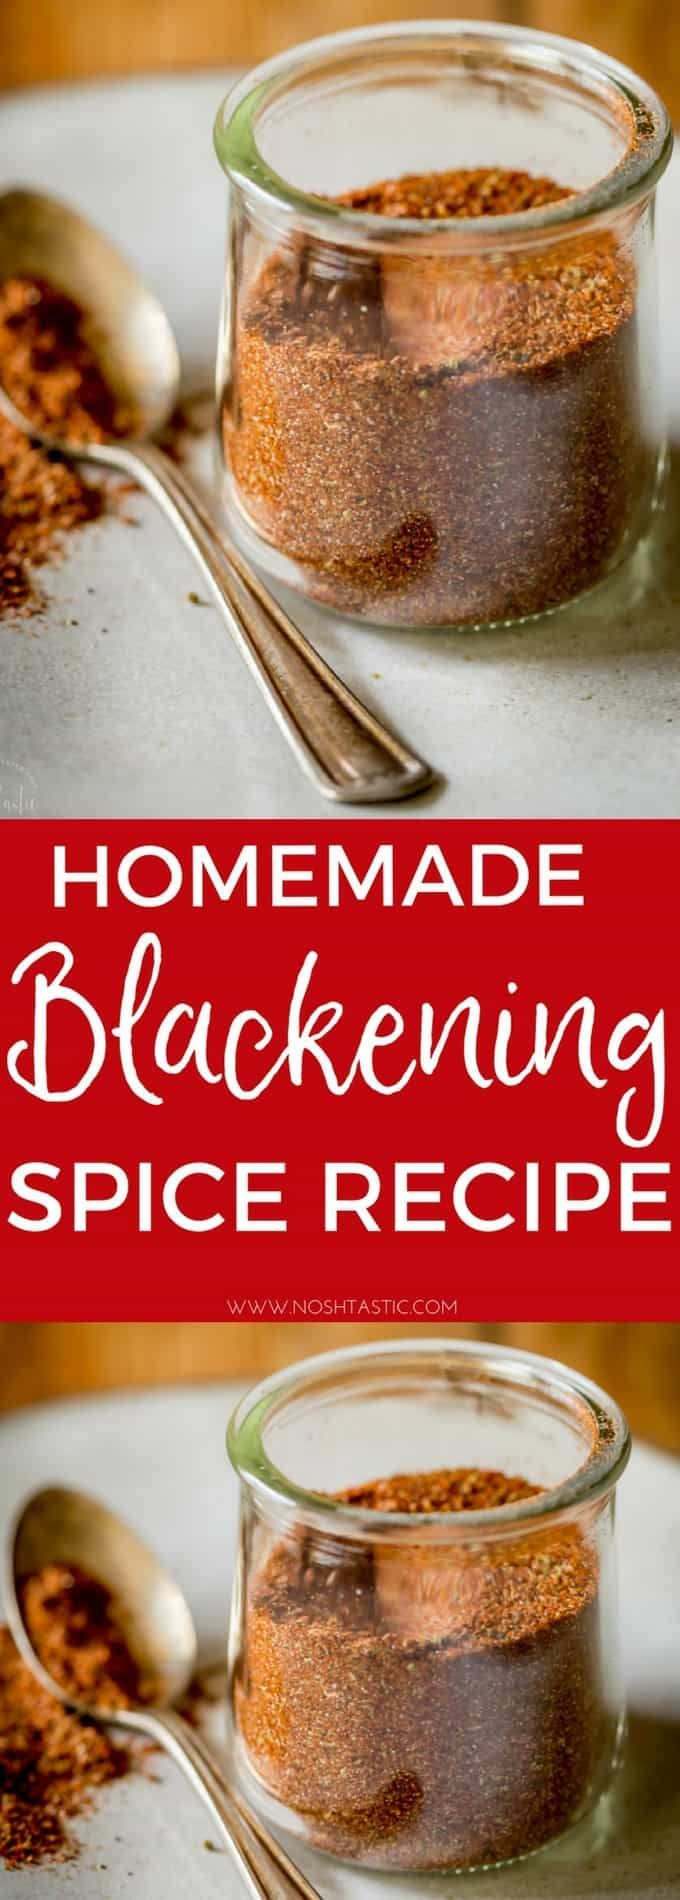 The BEST Homemade Blackened Seasoning recipe with easy tips for cooking with it! It's naturally gluten free, paleo, Whole30, Low Carb and Keto compliant, there is no sugar added. This is a variation of Paul Prudhomme's Blackened Seasoning Blend, a really